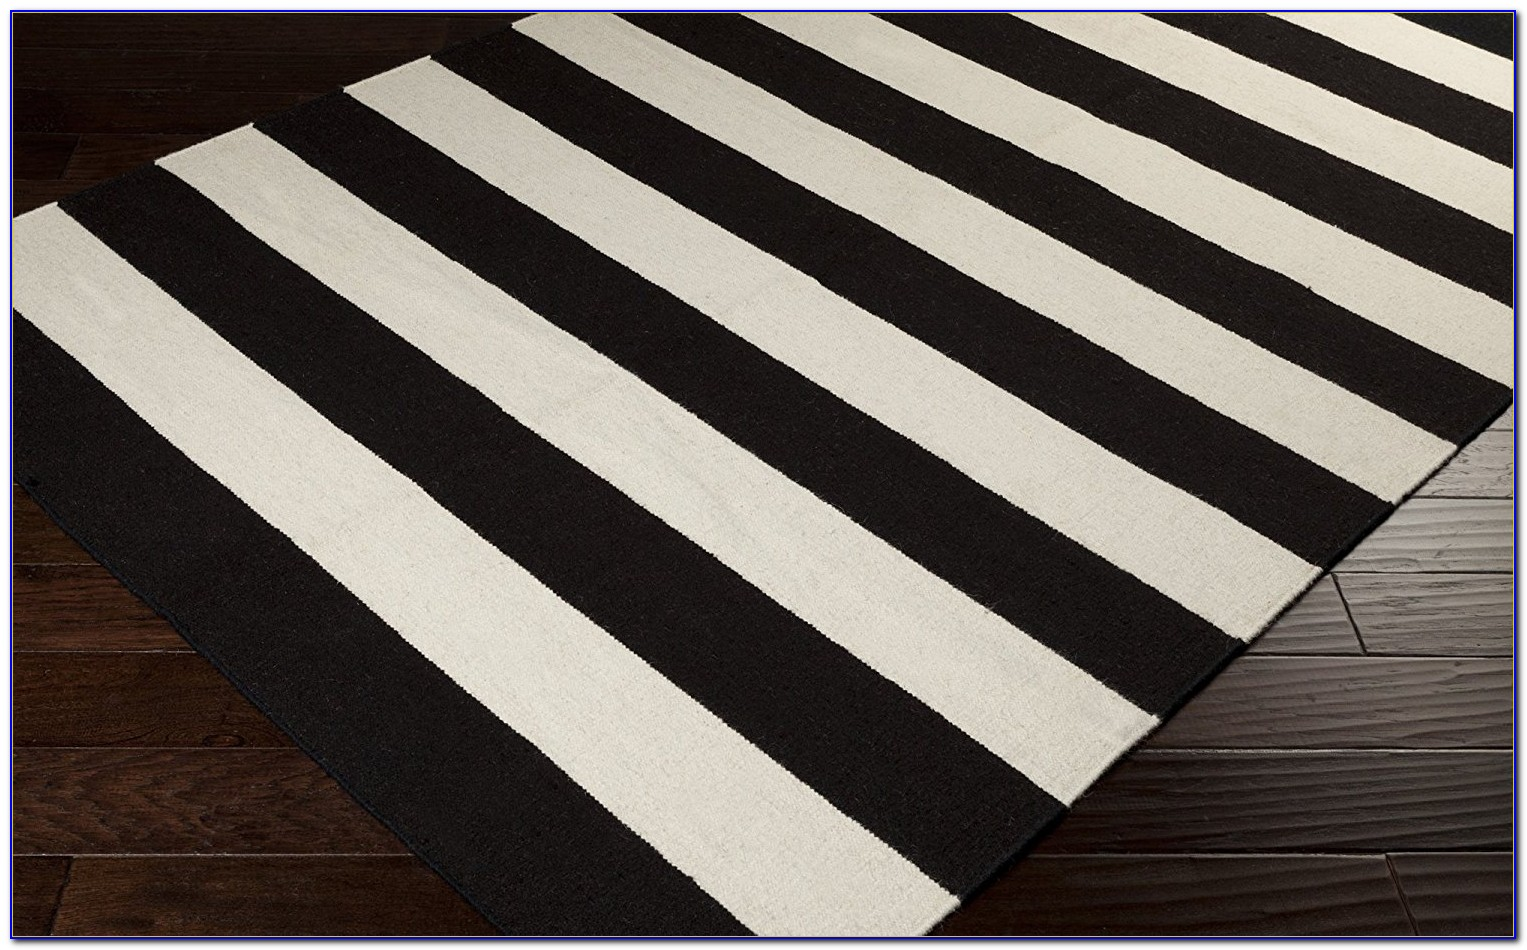 Catamaran Stripe Black/Off-White Indoor/Outdoor Area Rug By Dash and Albert Rugs $ - $1, Bold Stripe Black Area Rug By Plymouth Home $ - $ $ Striped rugs provide a warming touch and work best as centerpieces in rooms. They go well with just about everything, though a little bit of thought toward your current.